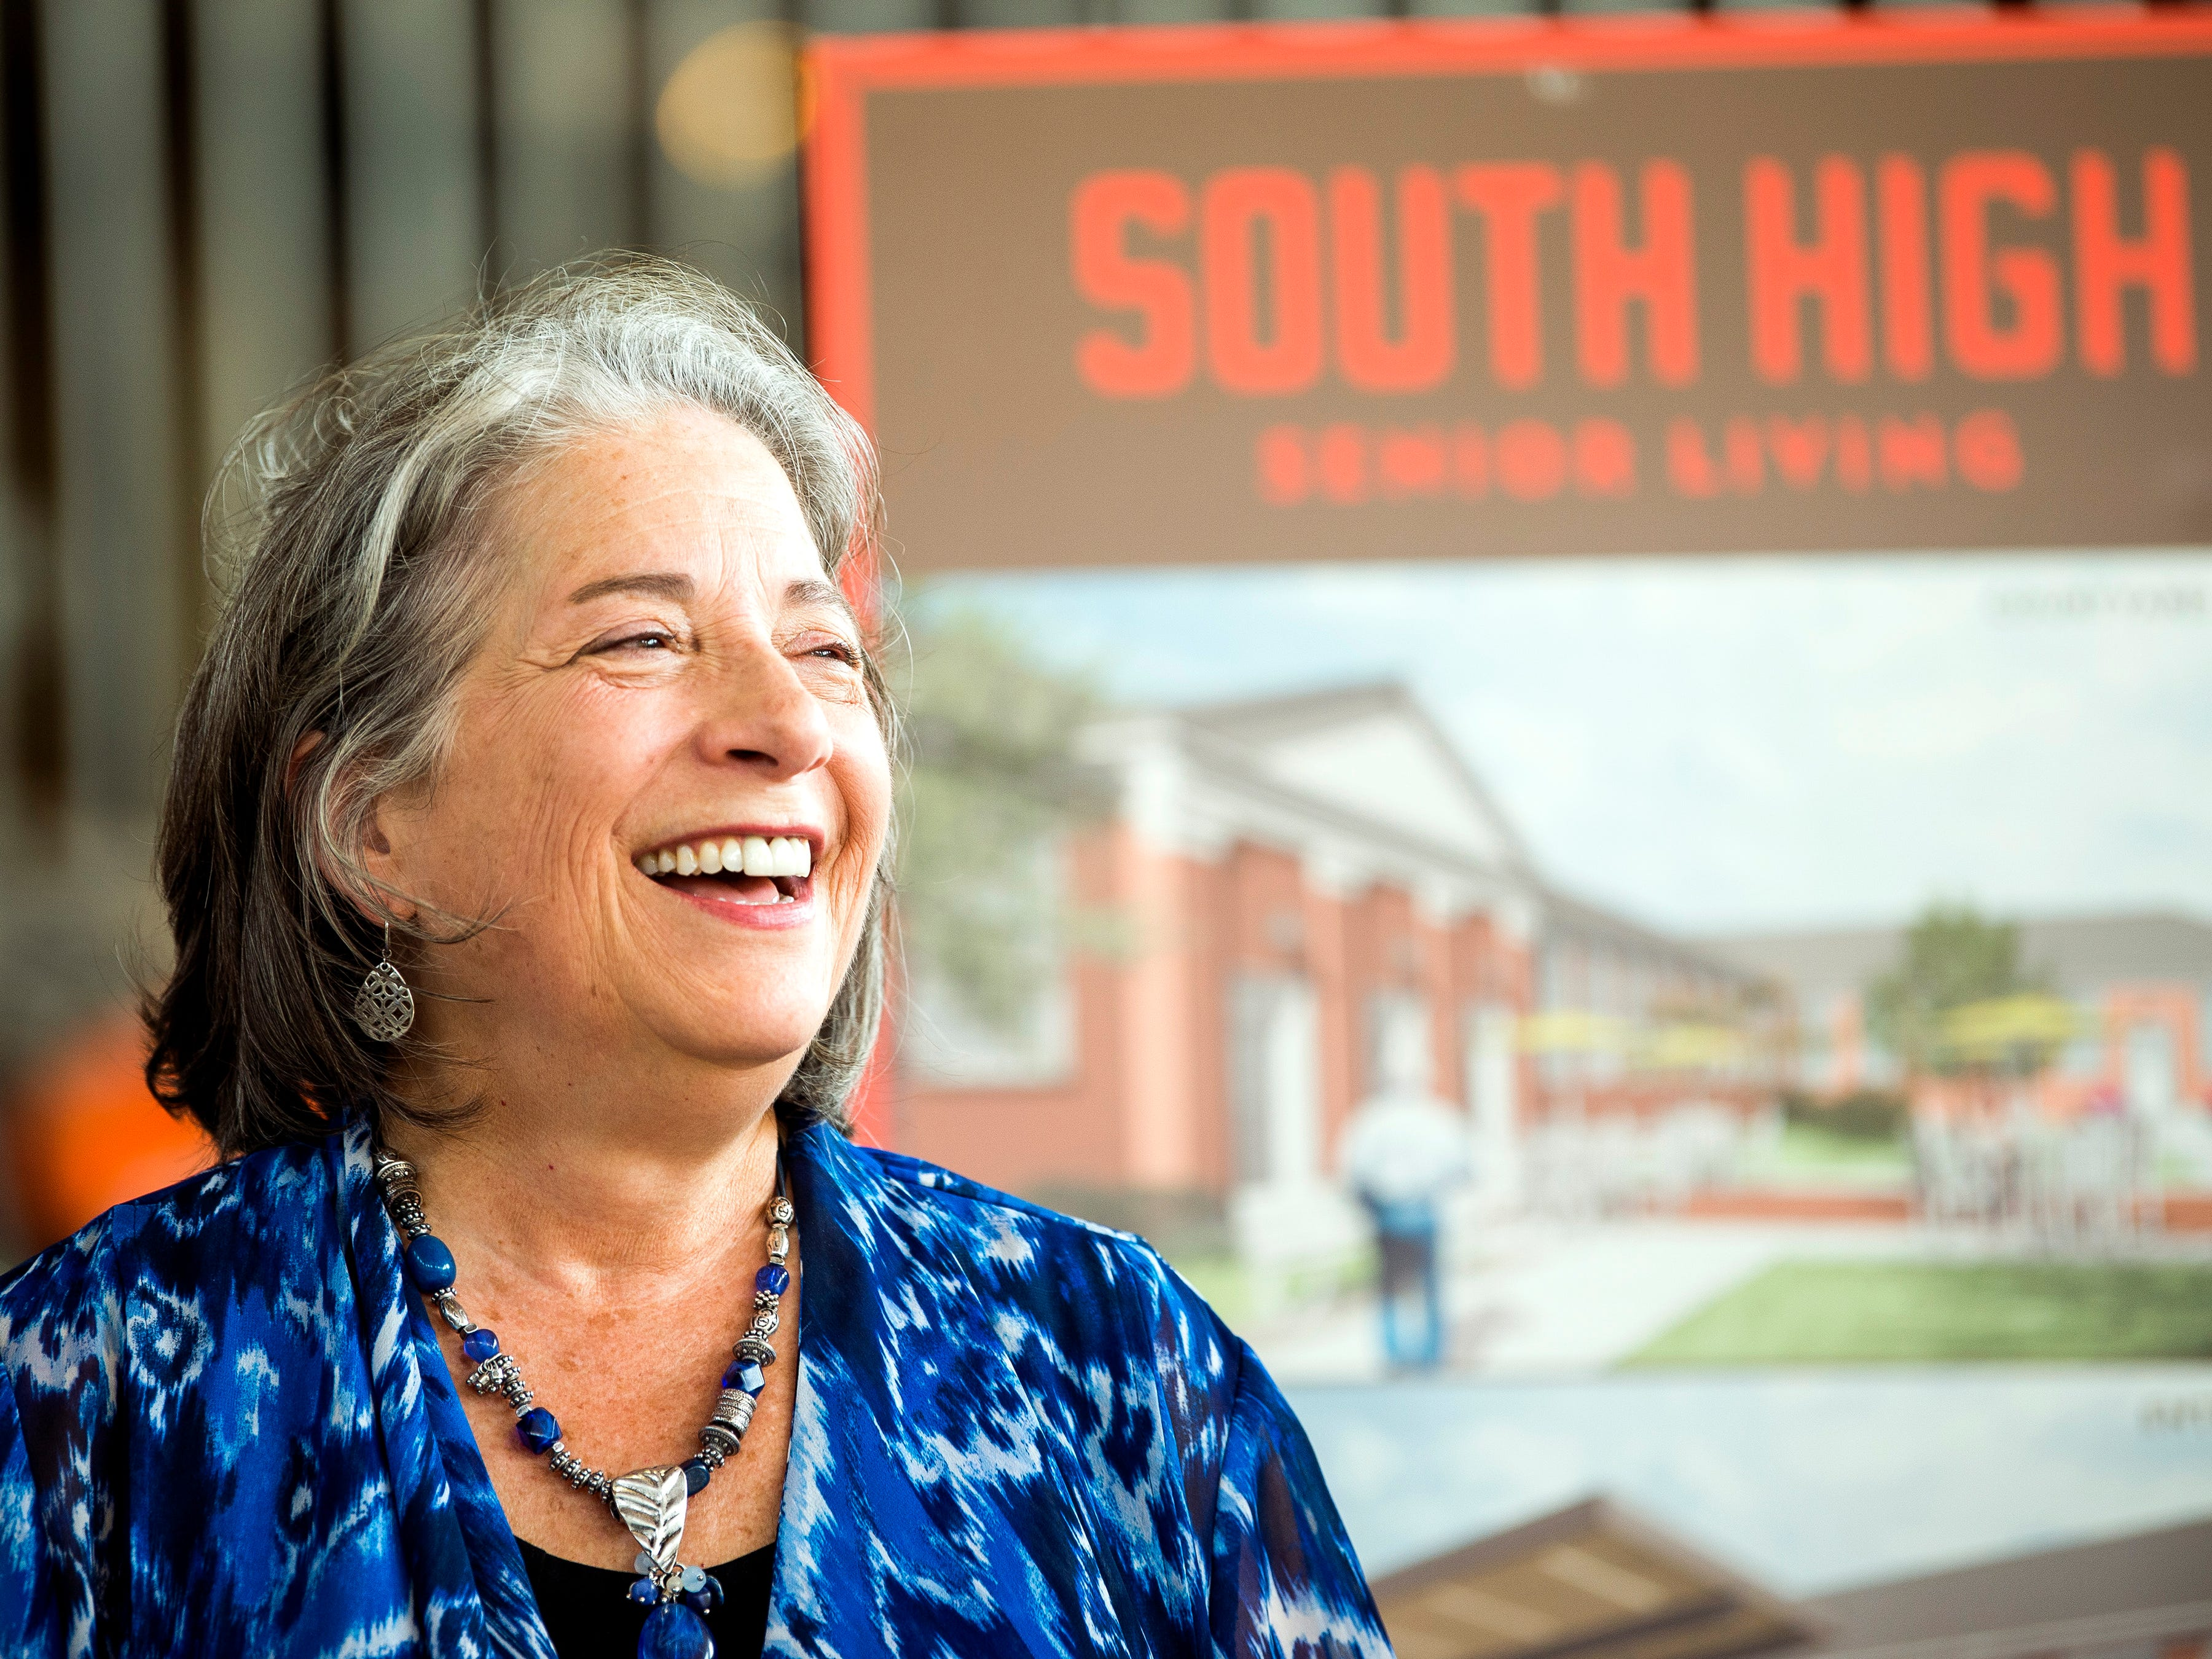 Knoxville Mayor Madeline Rogero talks about the recent history of South High